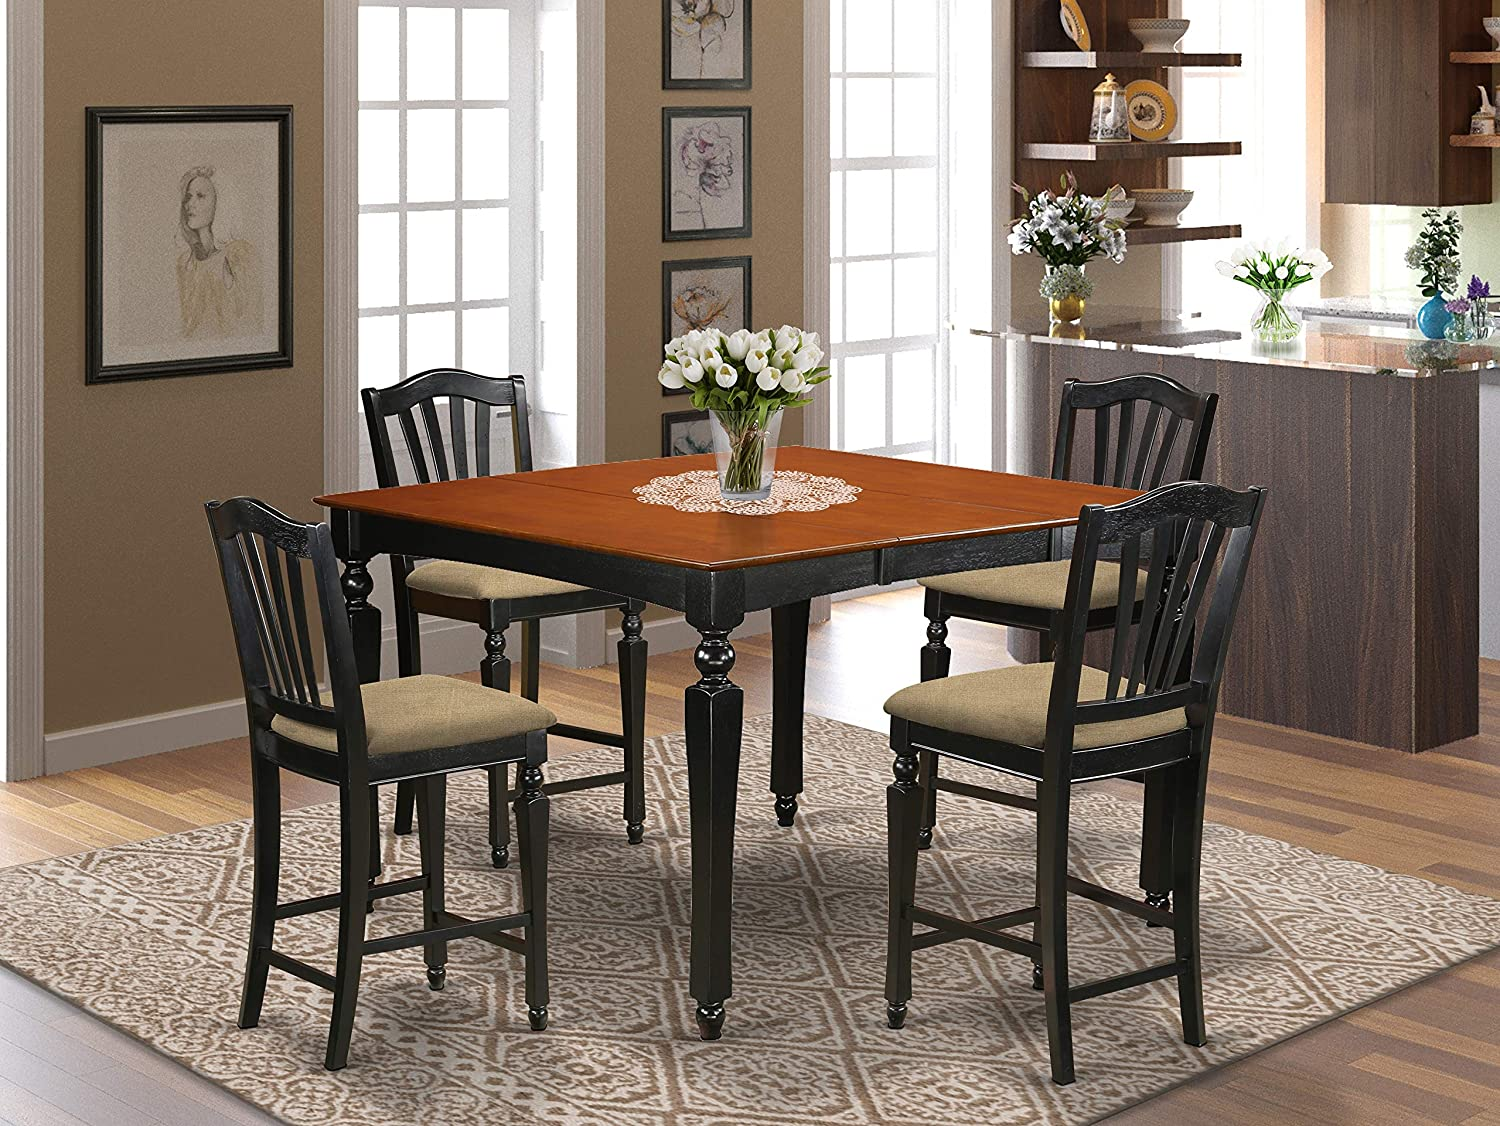 Amazon Com 5 Pc Counter Height Set Square Gathering Table And 4 Counter Height Chairs Furniture Decor